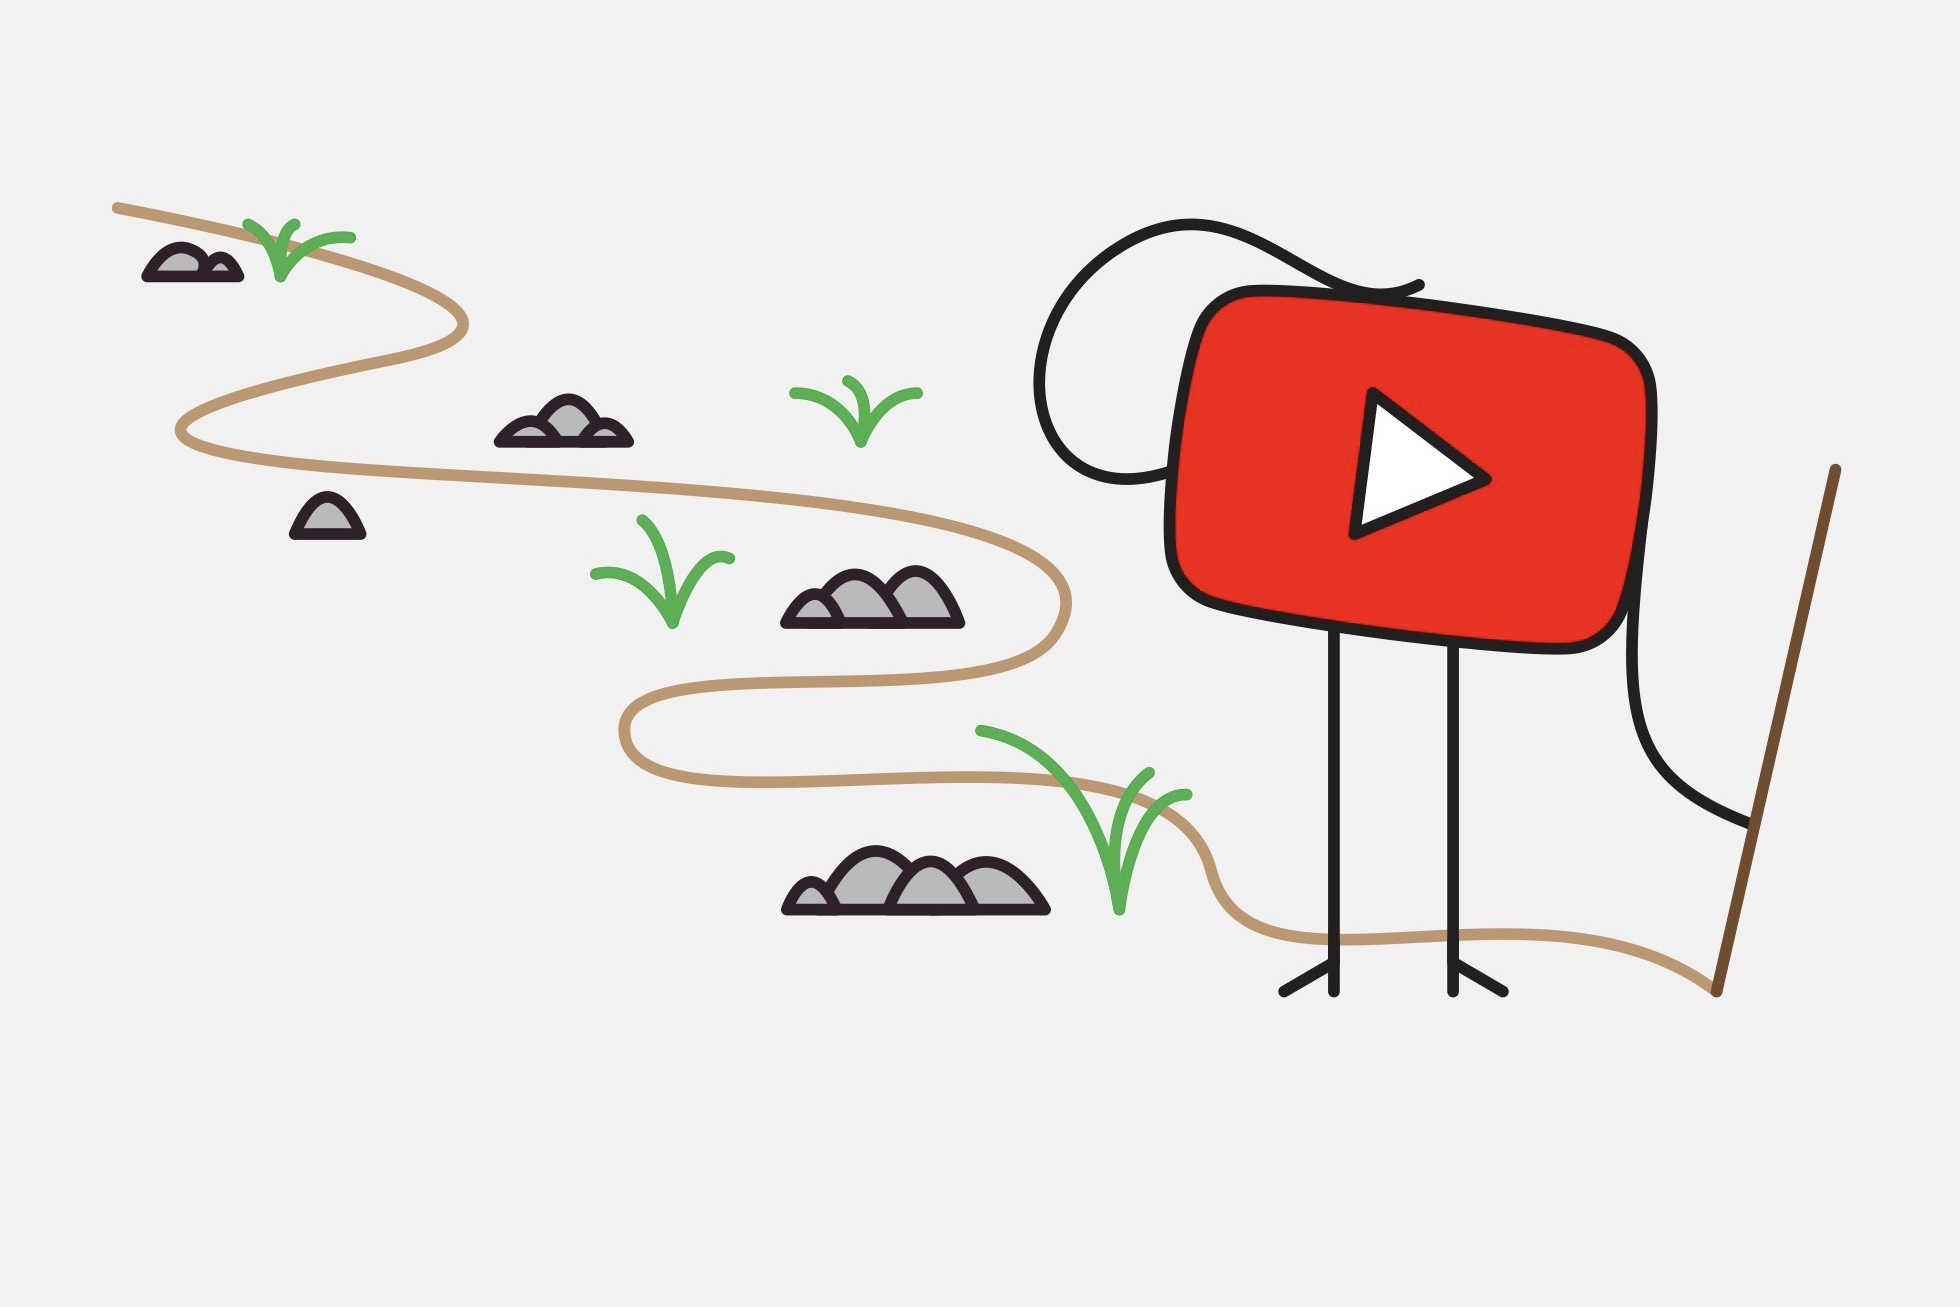 YouTube No Longer Welcomes Dangerous Challenges On Their Platform 2